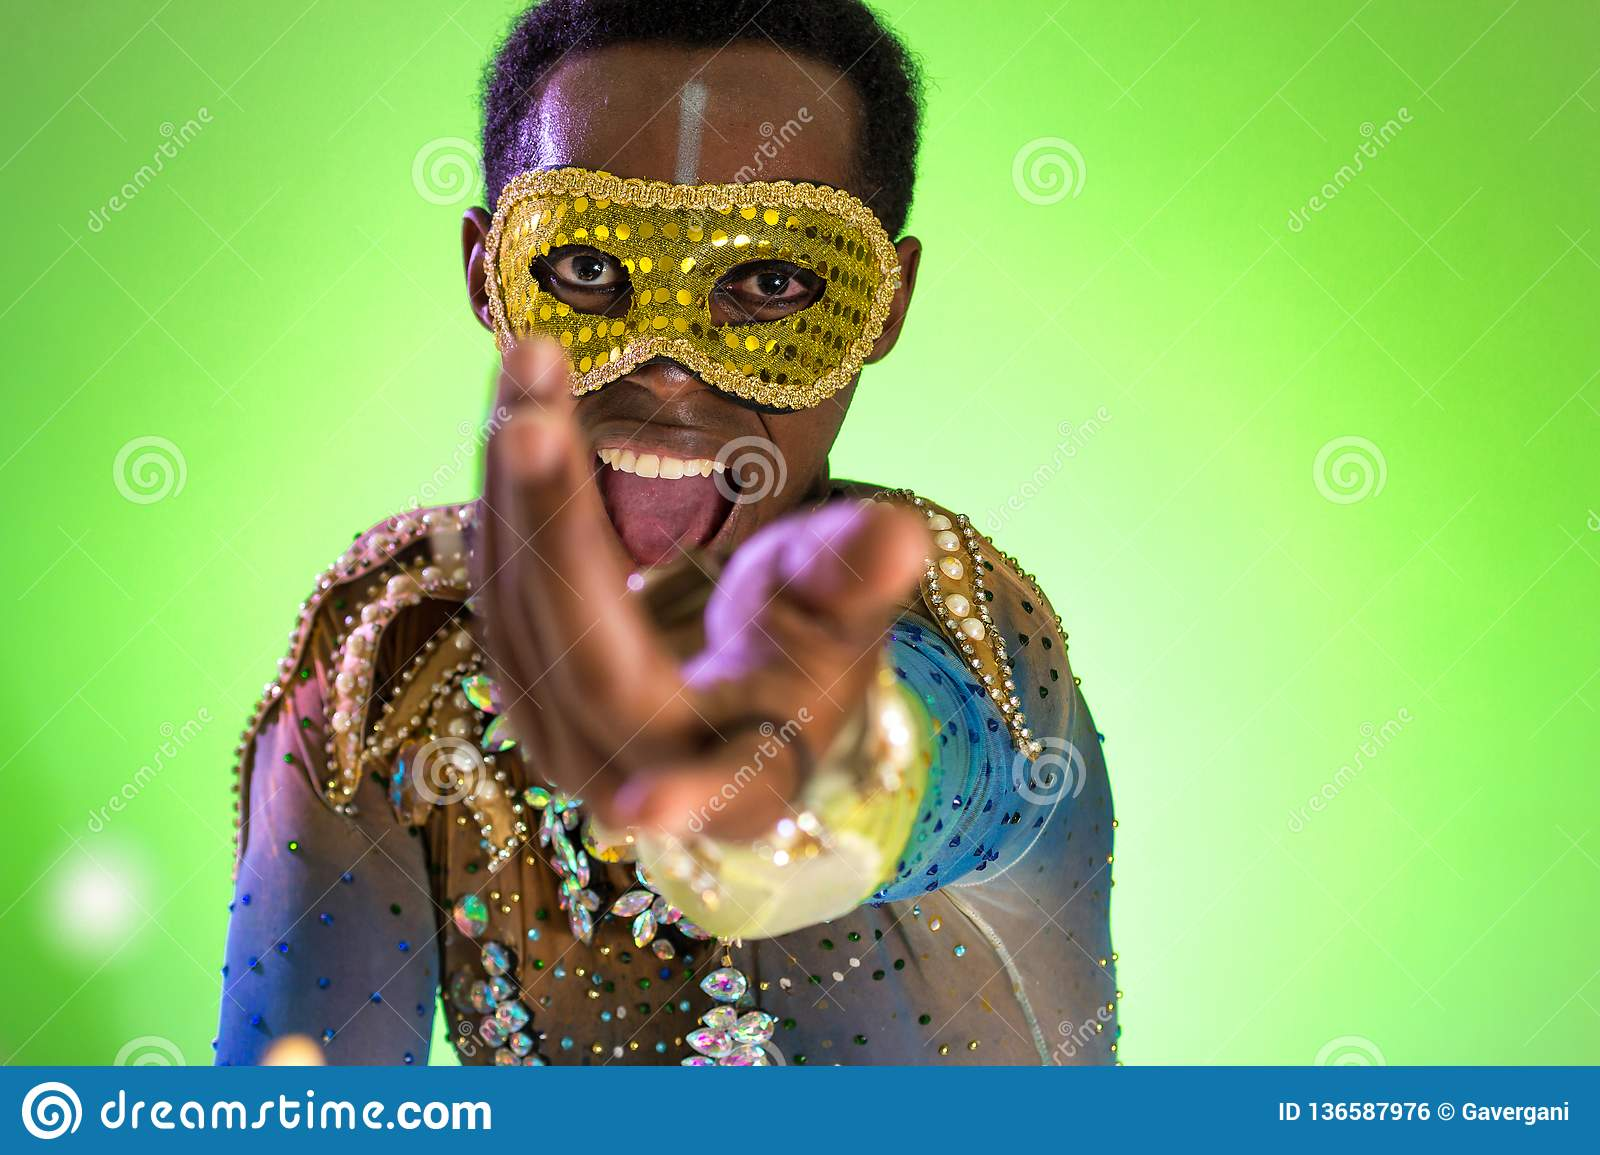 Carnaval Brazil. Face of african american man wearing costume. Bright and Colorful. Holiday concept, tradition and costume